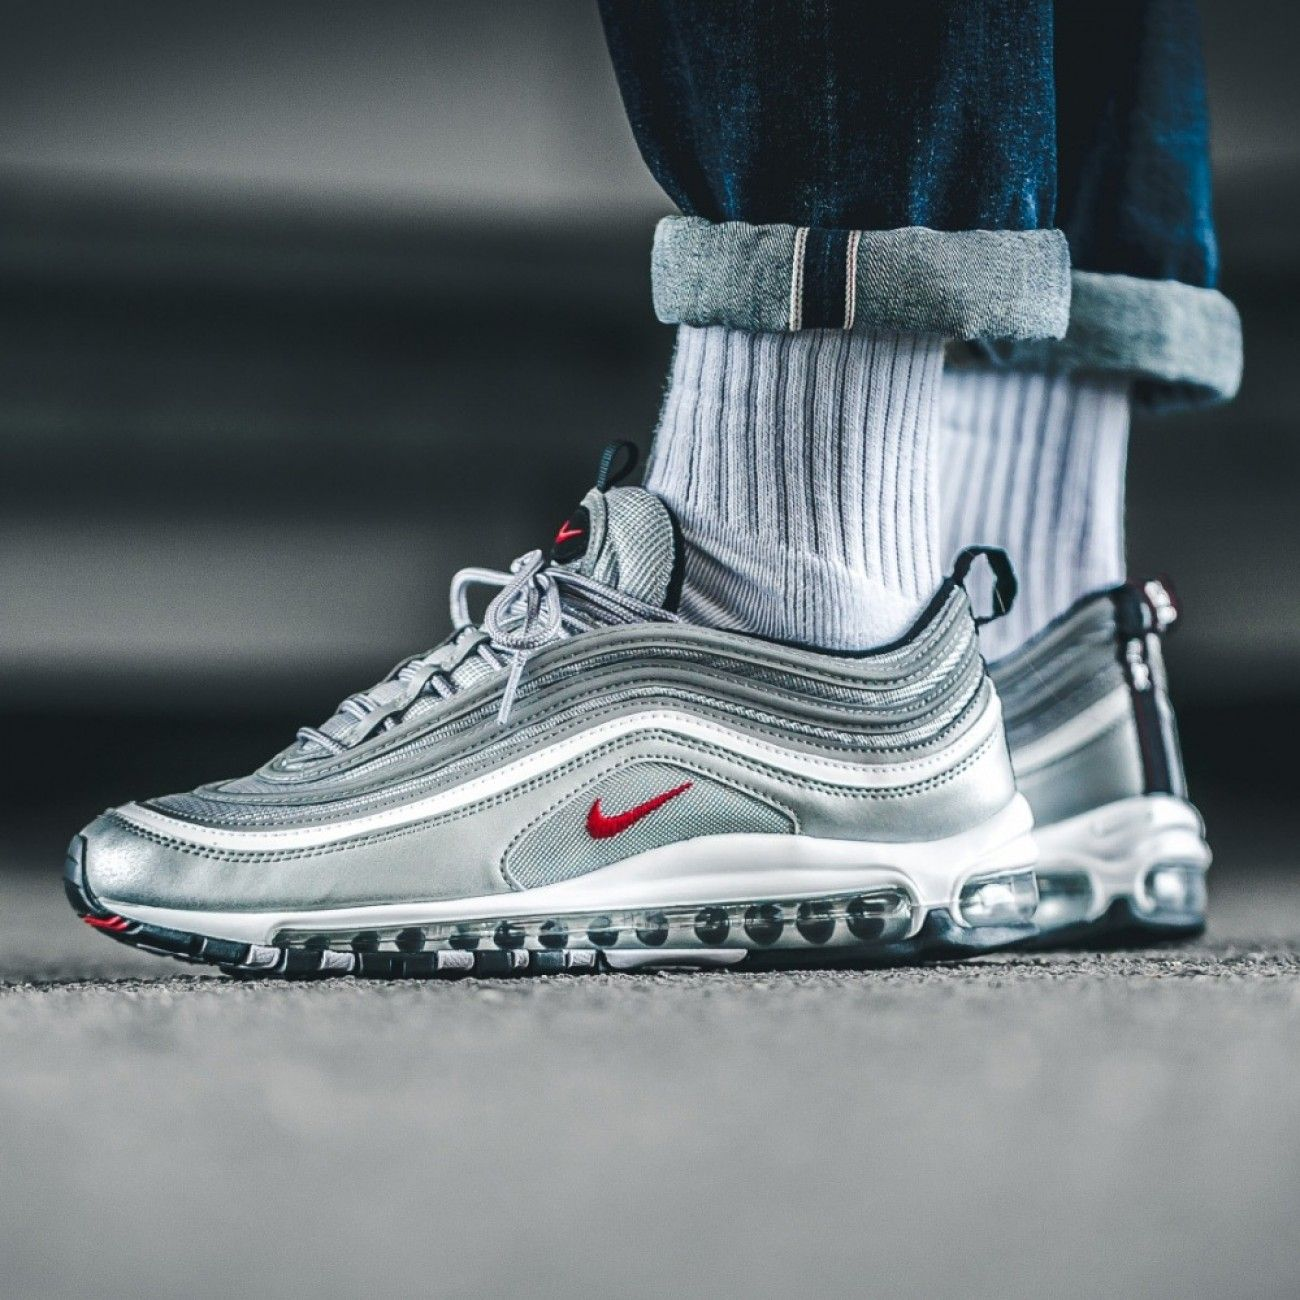 nike air max 97 silver bullet april 2017 nz